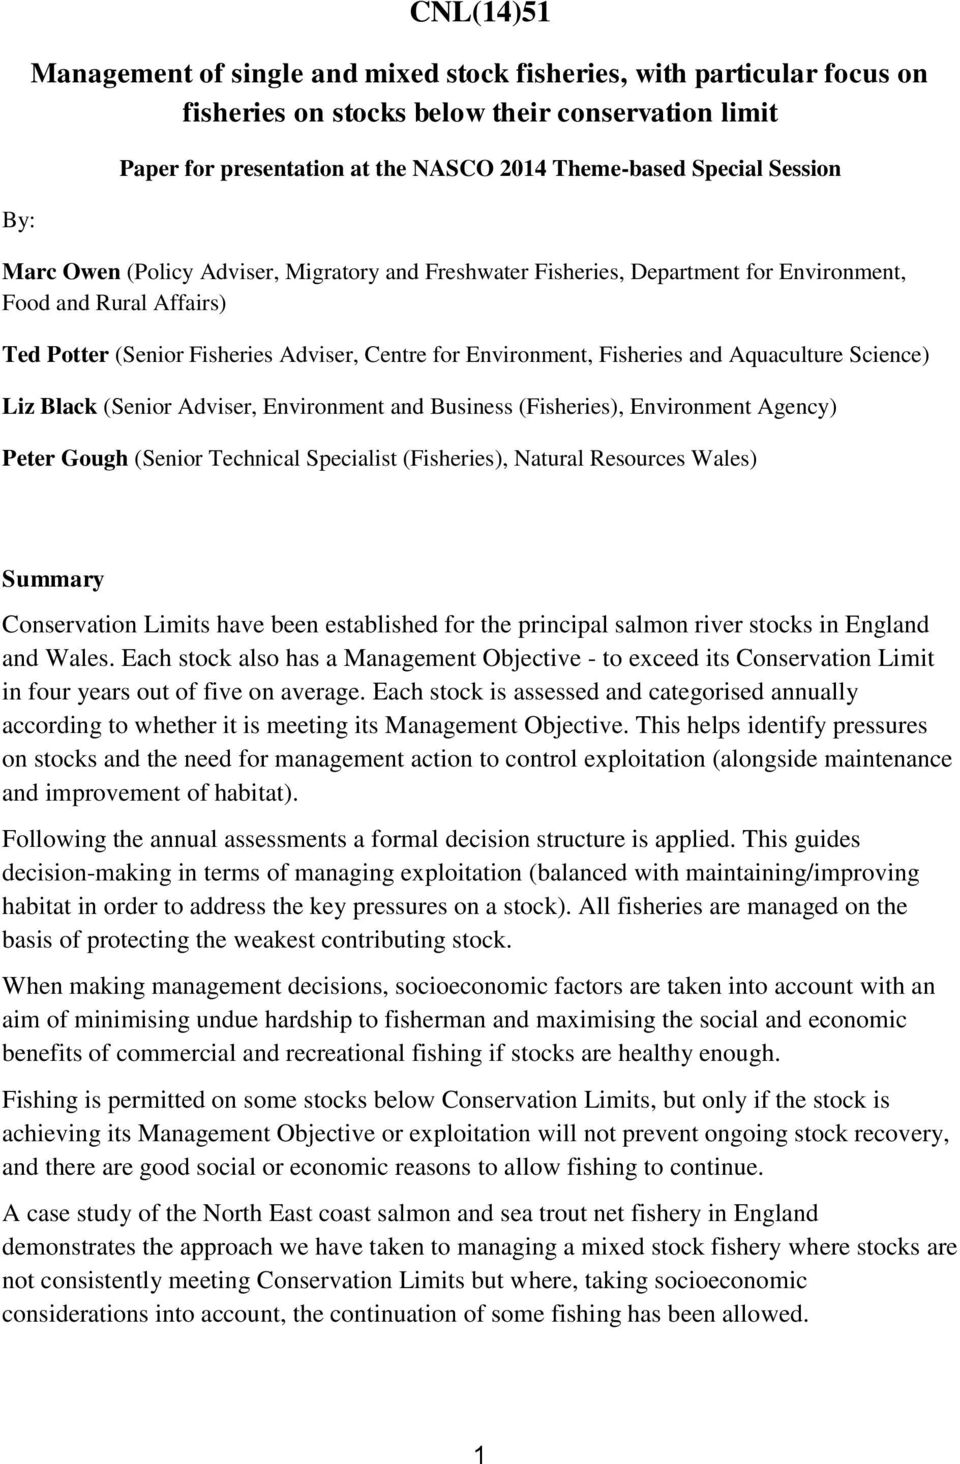 Aquaculture Science) Liz Black (Senior Adviser, Environment and Business (Fisheries), Environment Agency) Peter Gough (Senior Technical Specialist (Fisheries), Natural Resources Wales) Summary